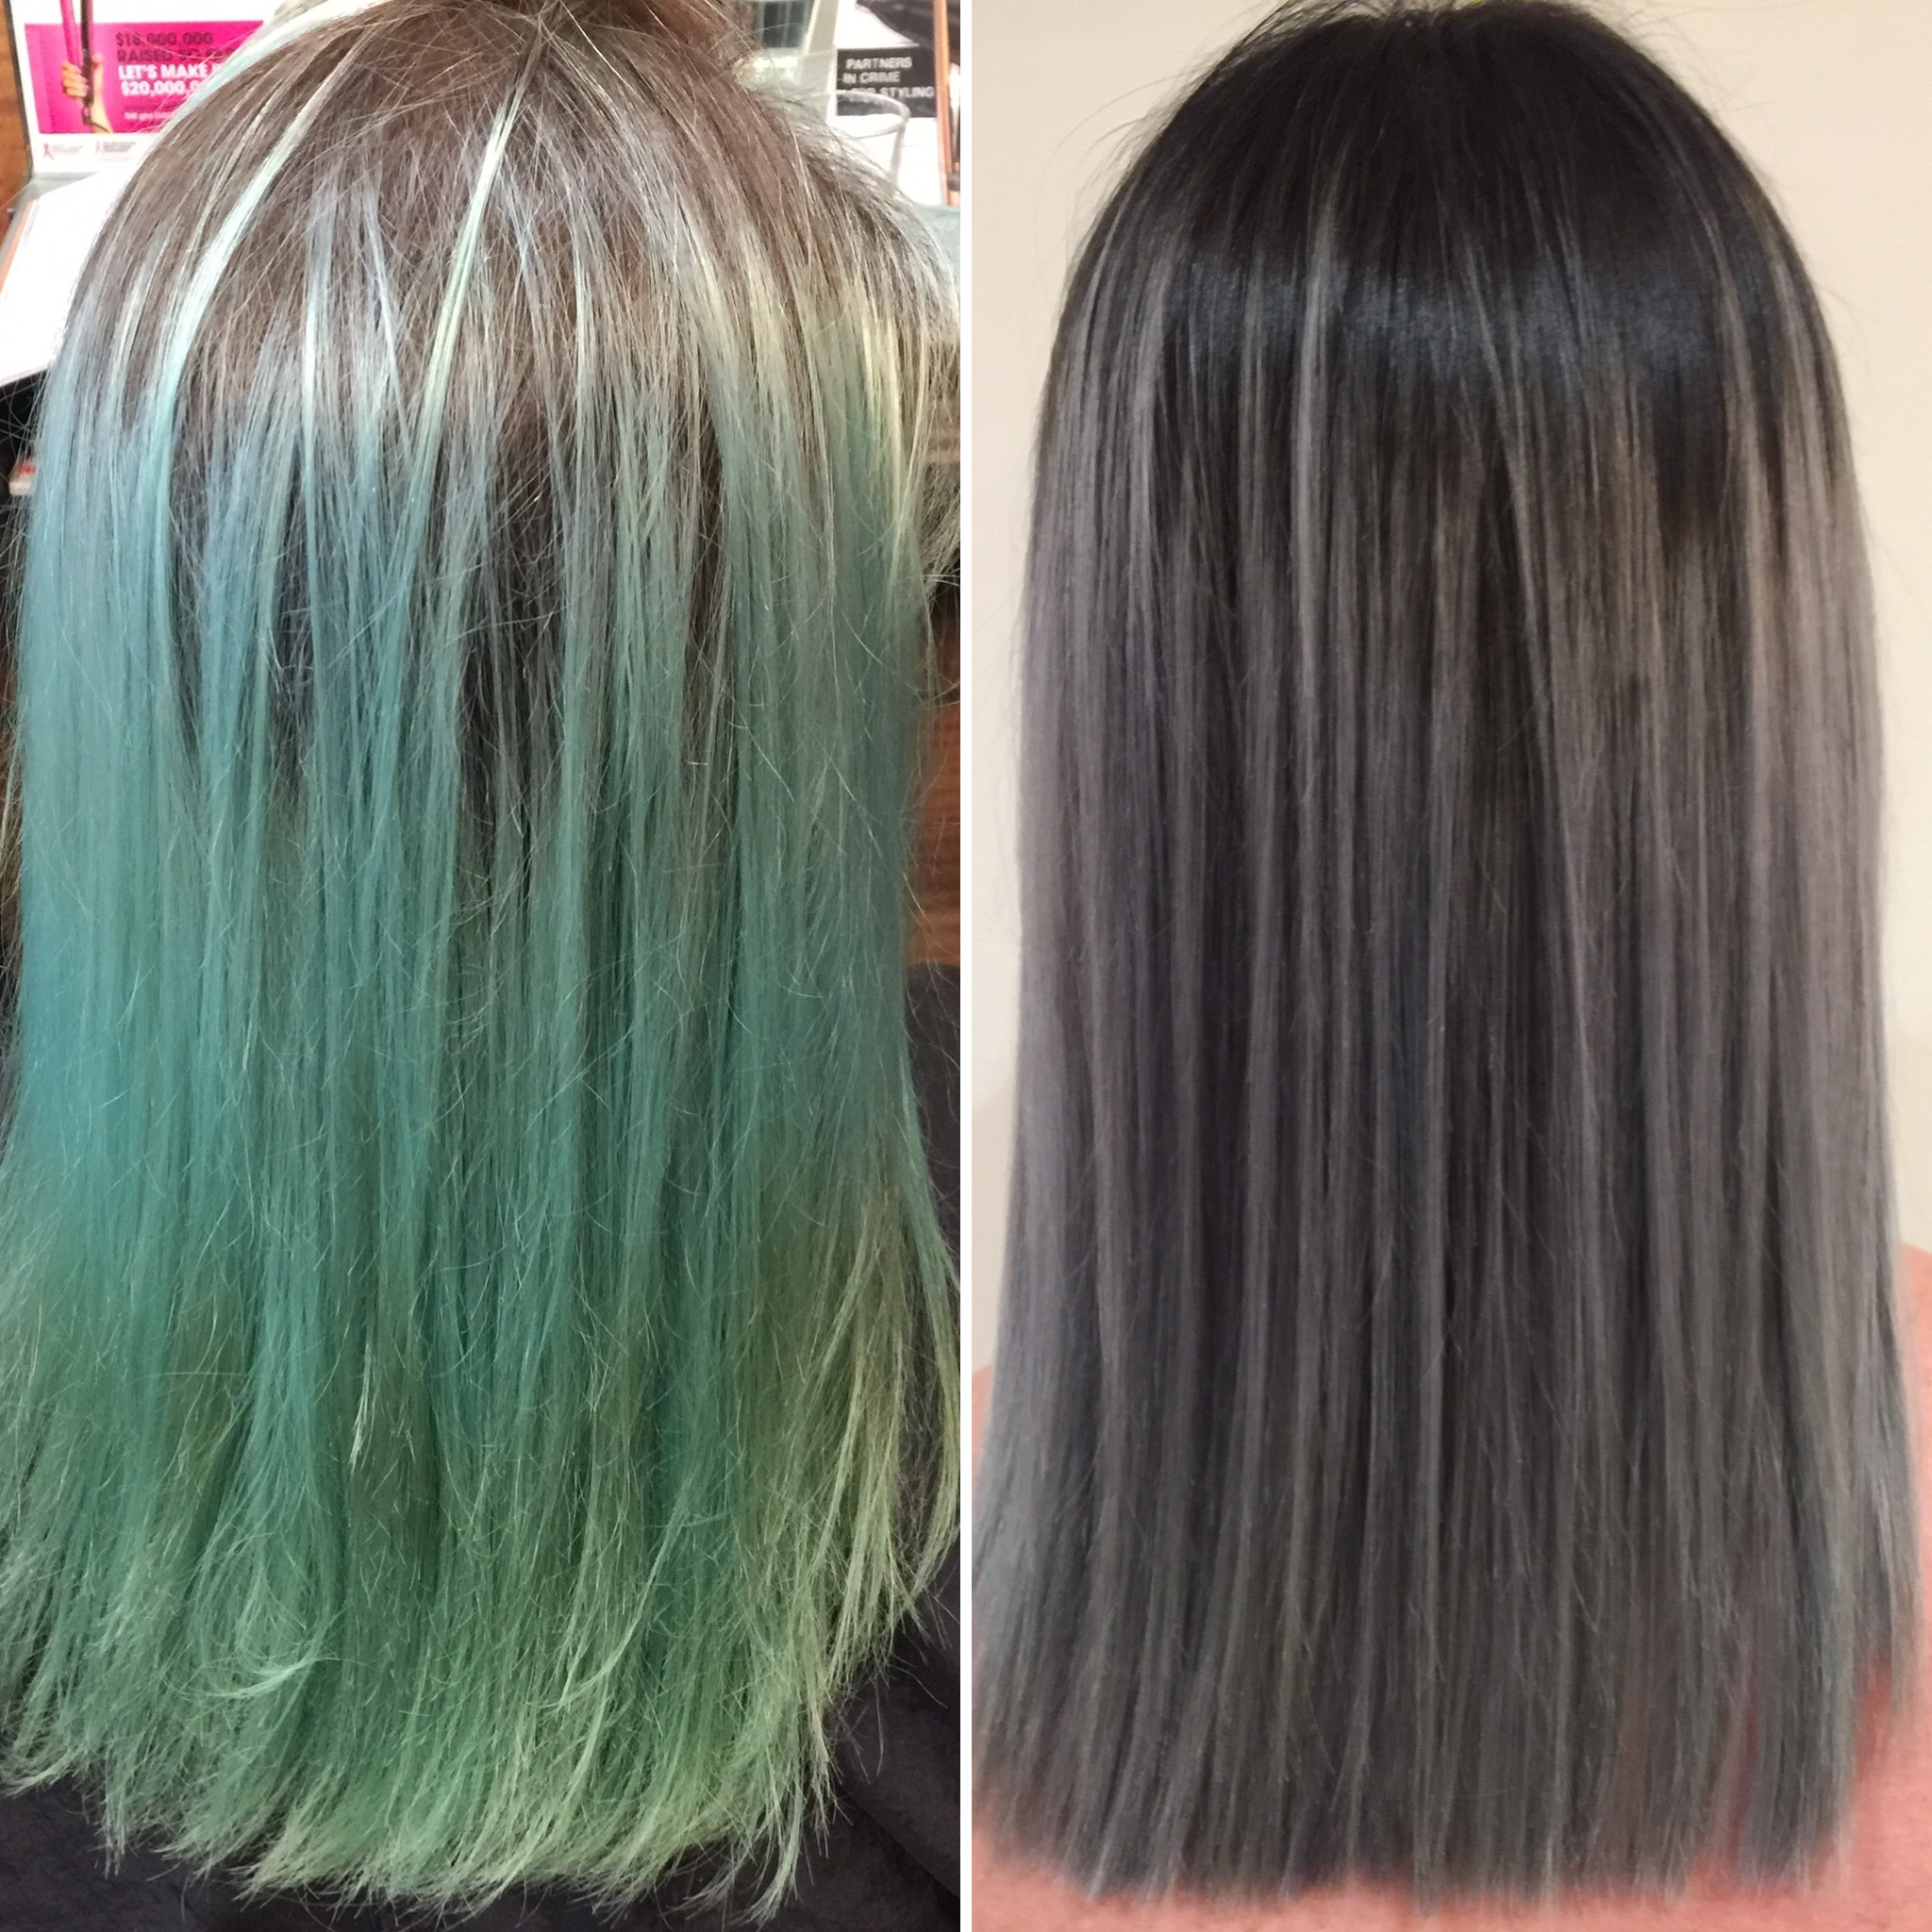 Before (left) +After (right)